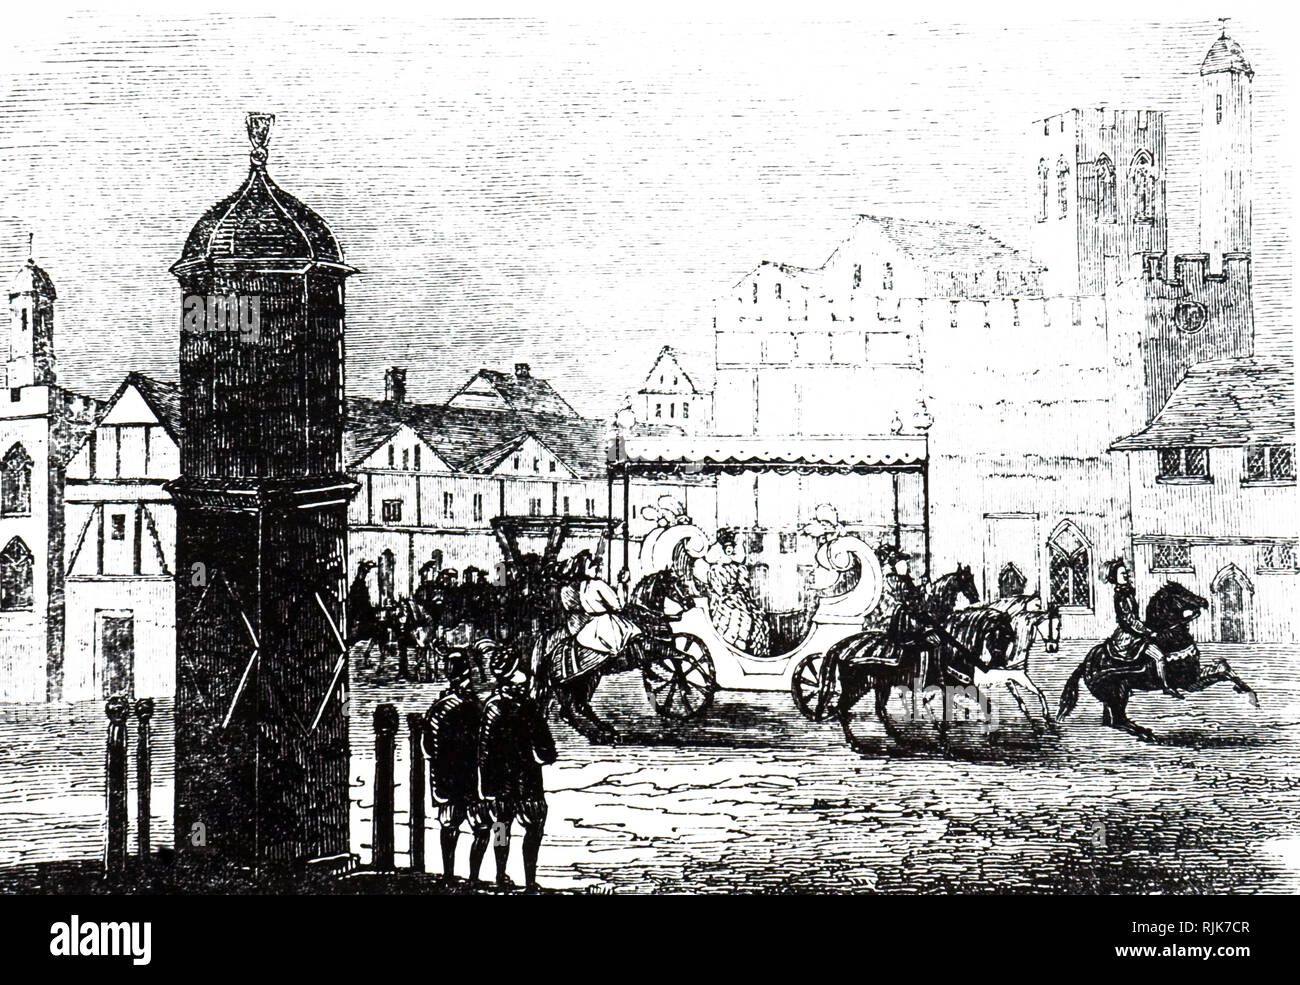 An engraving depicting Cornhill in the time of Elizabeth I, showing the Queen travelling through in a coach. Dated 19th century - Stock Image